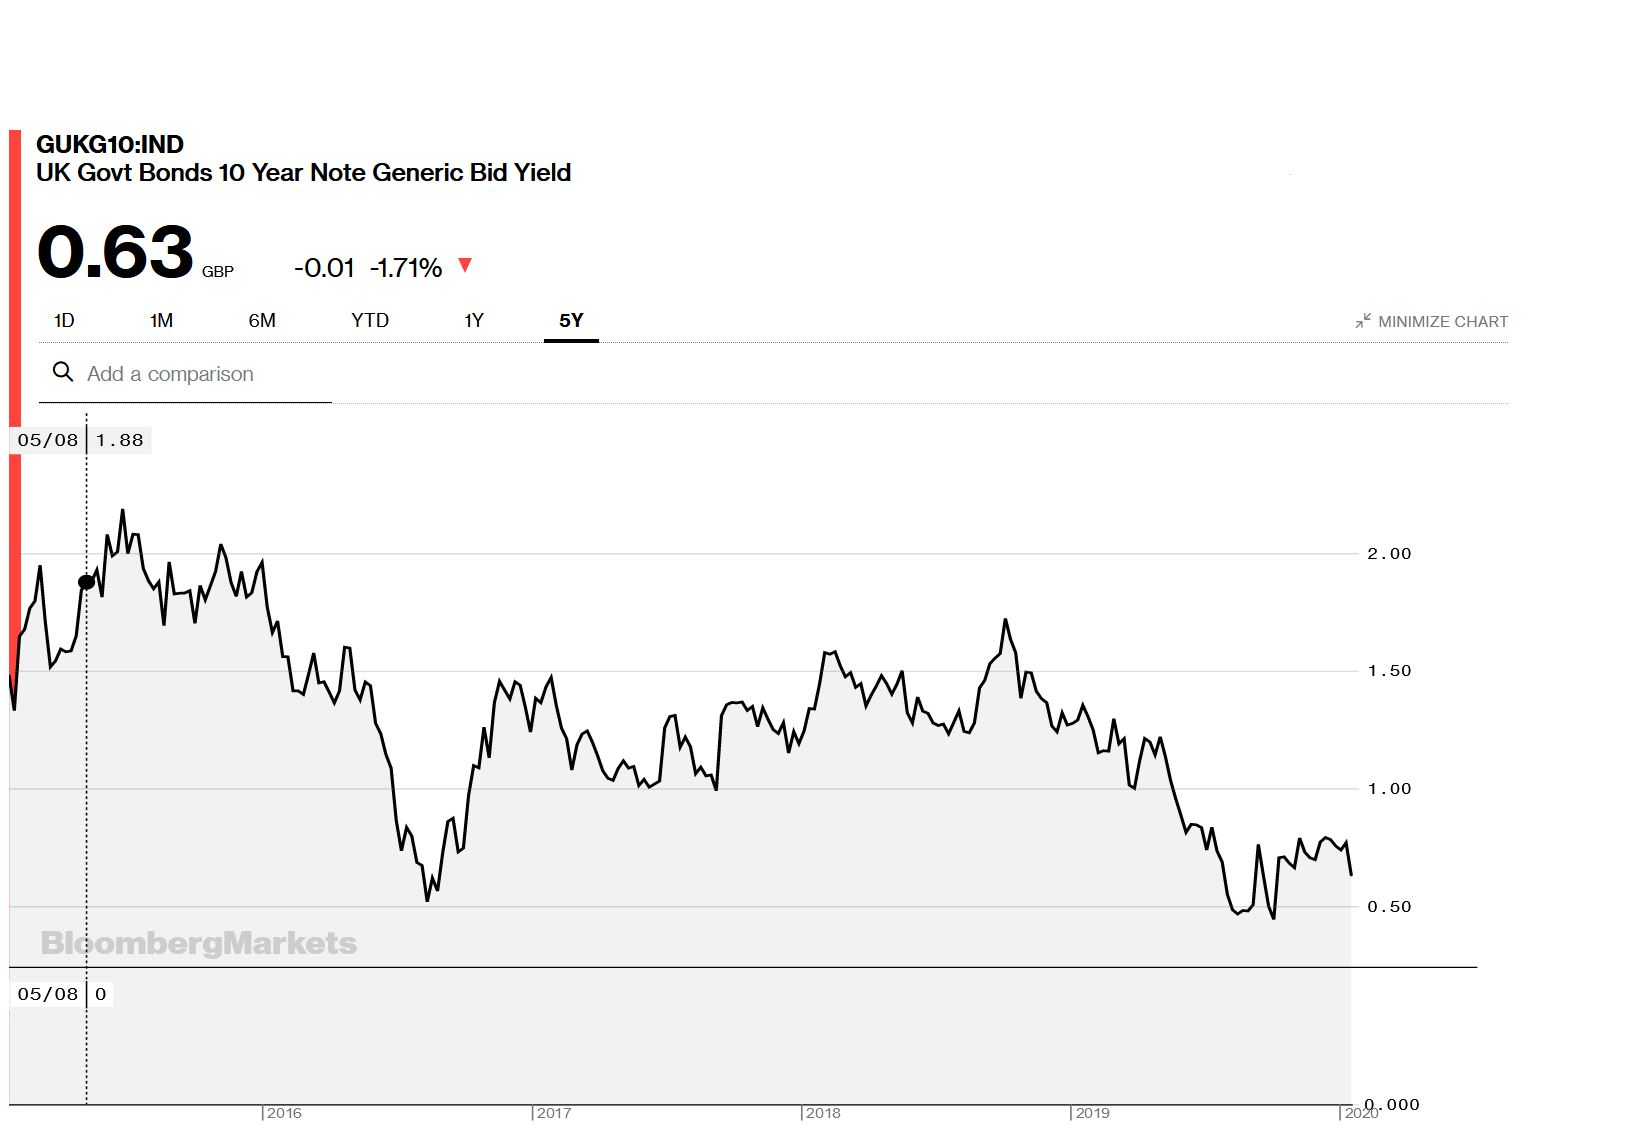 5 Year Chart of 10 Year Interest Rates